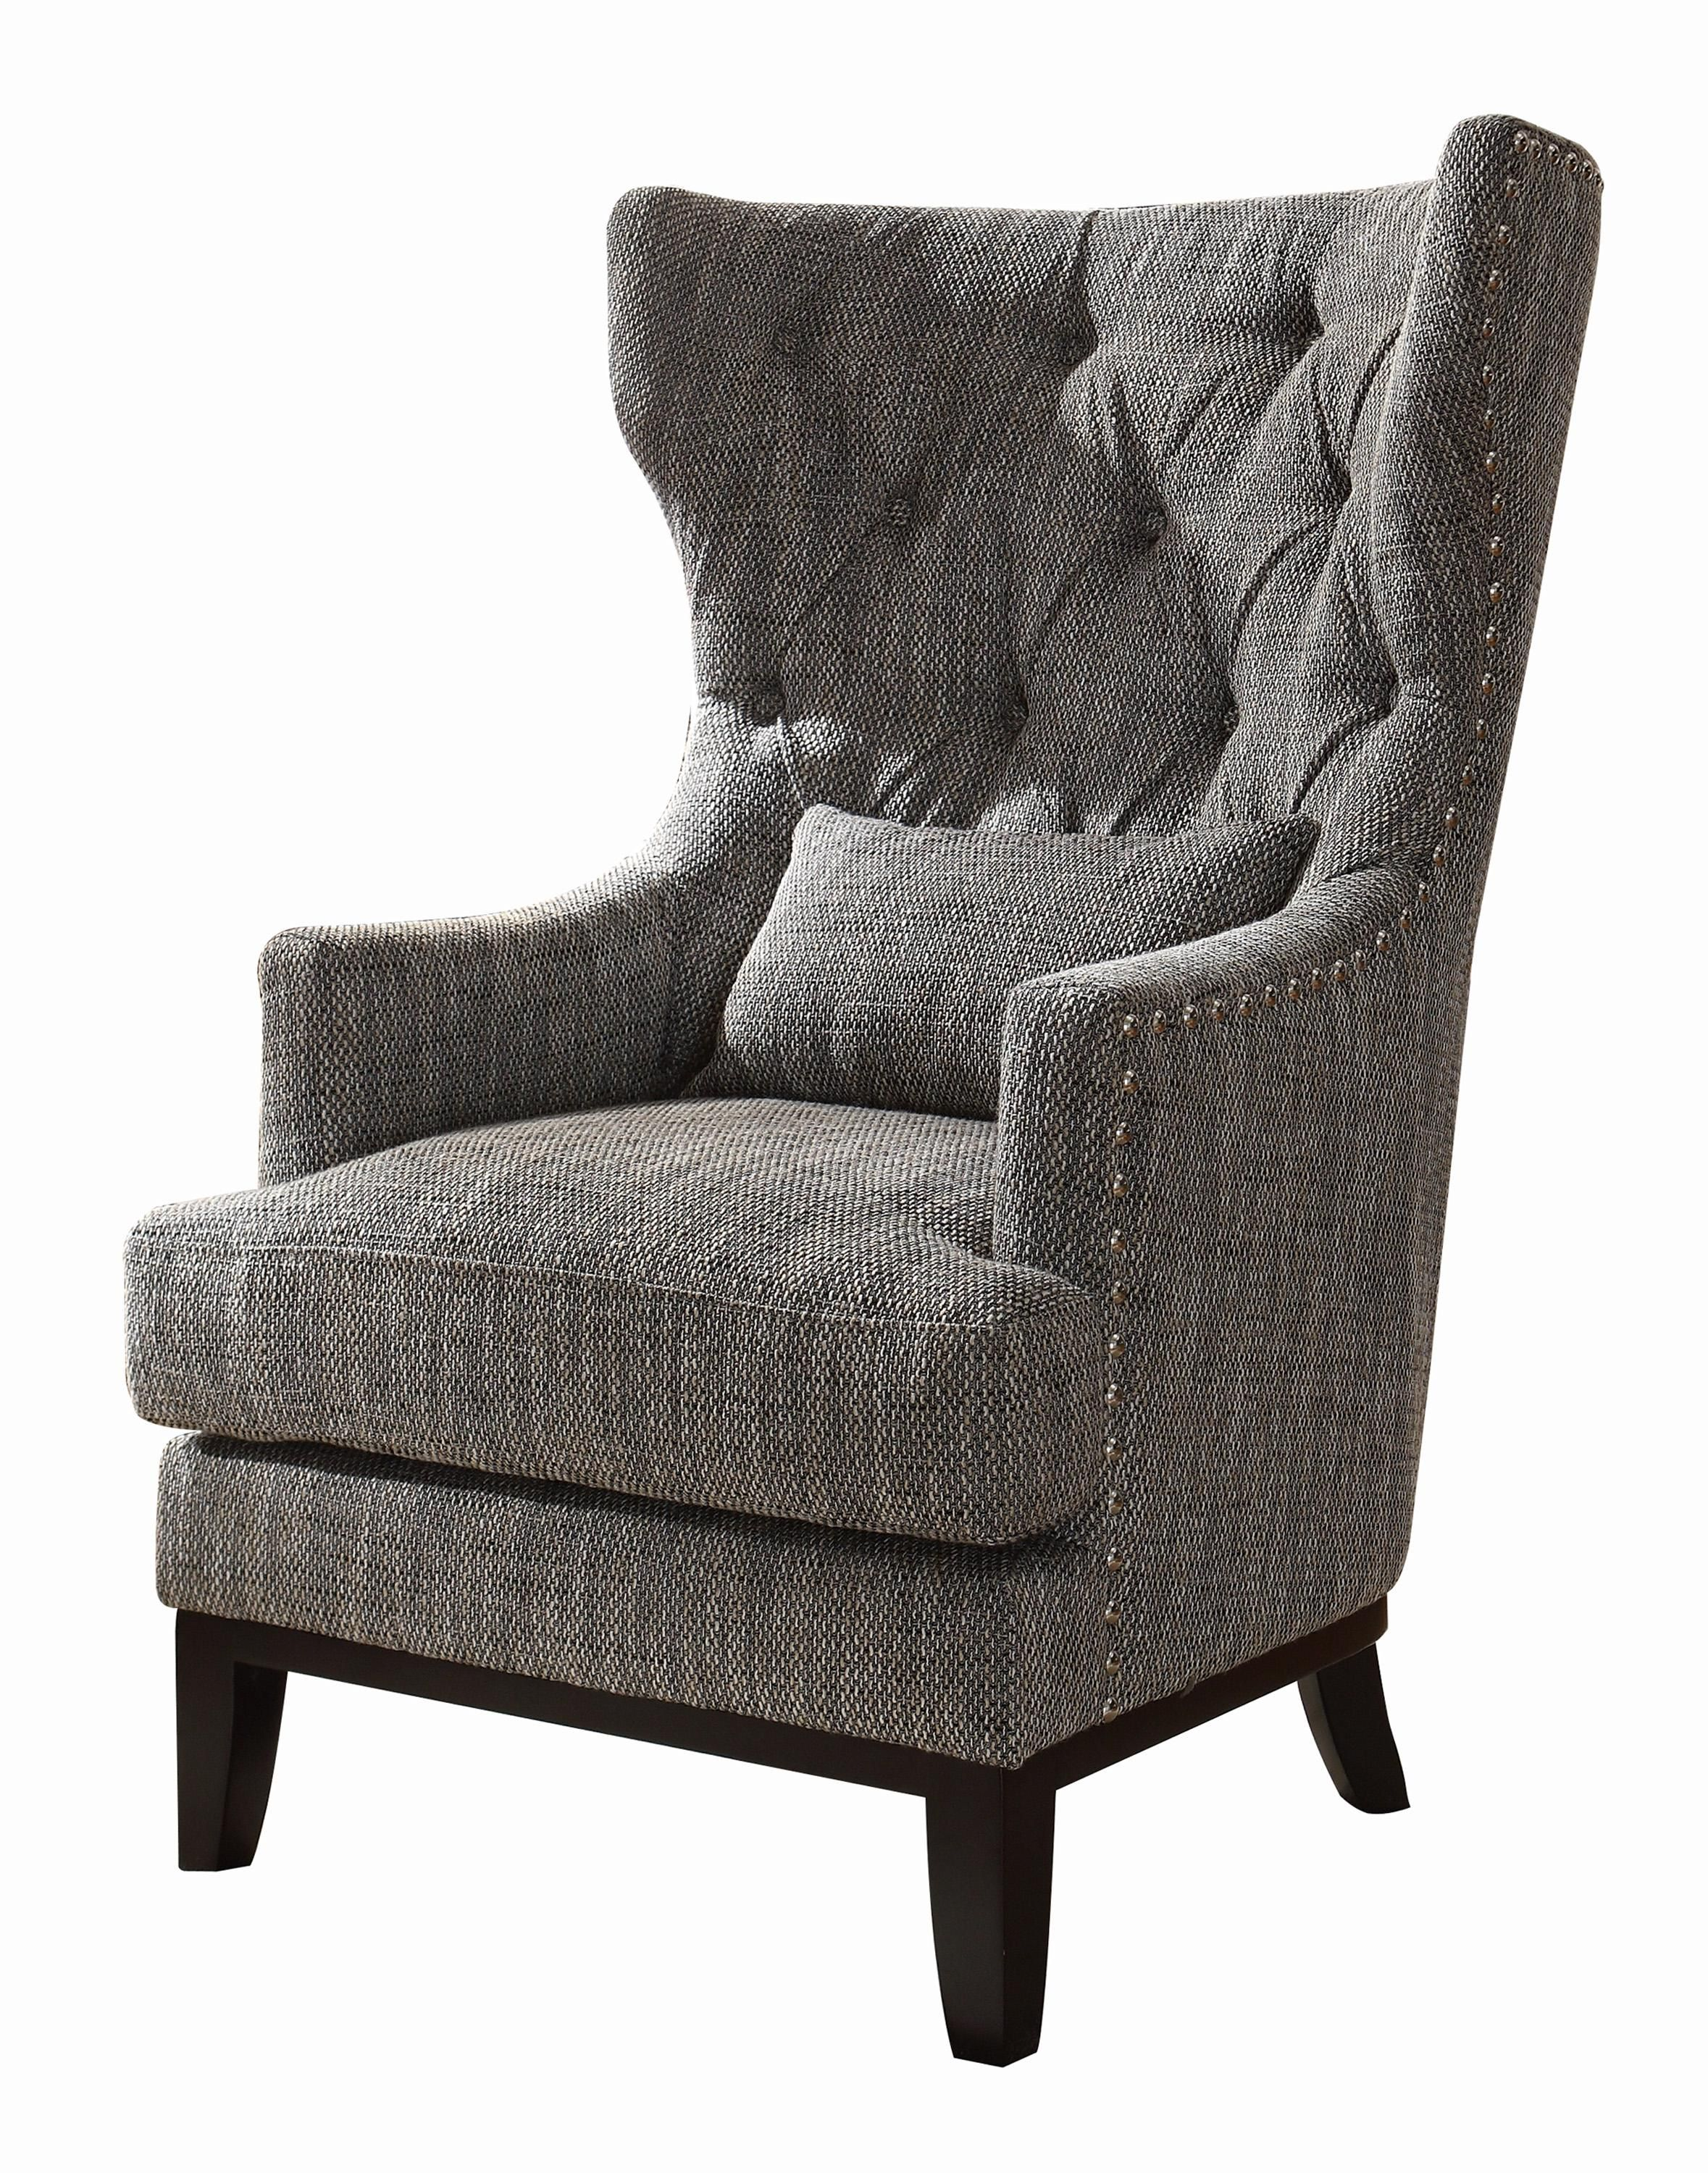 Grey And White Accent Chair Accent Chairs White Accent Chair Chair